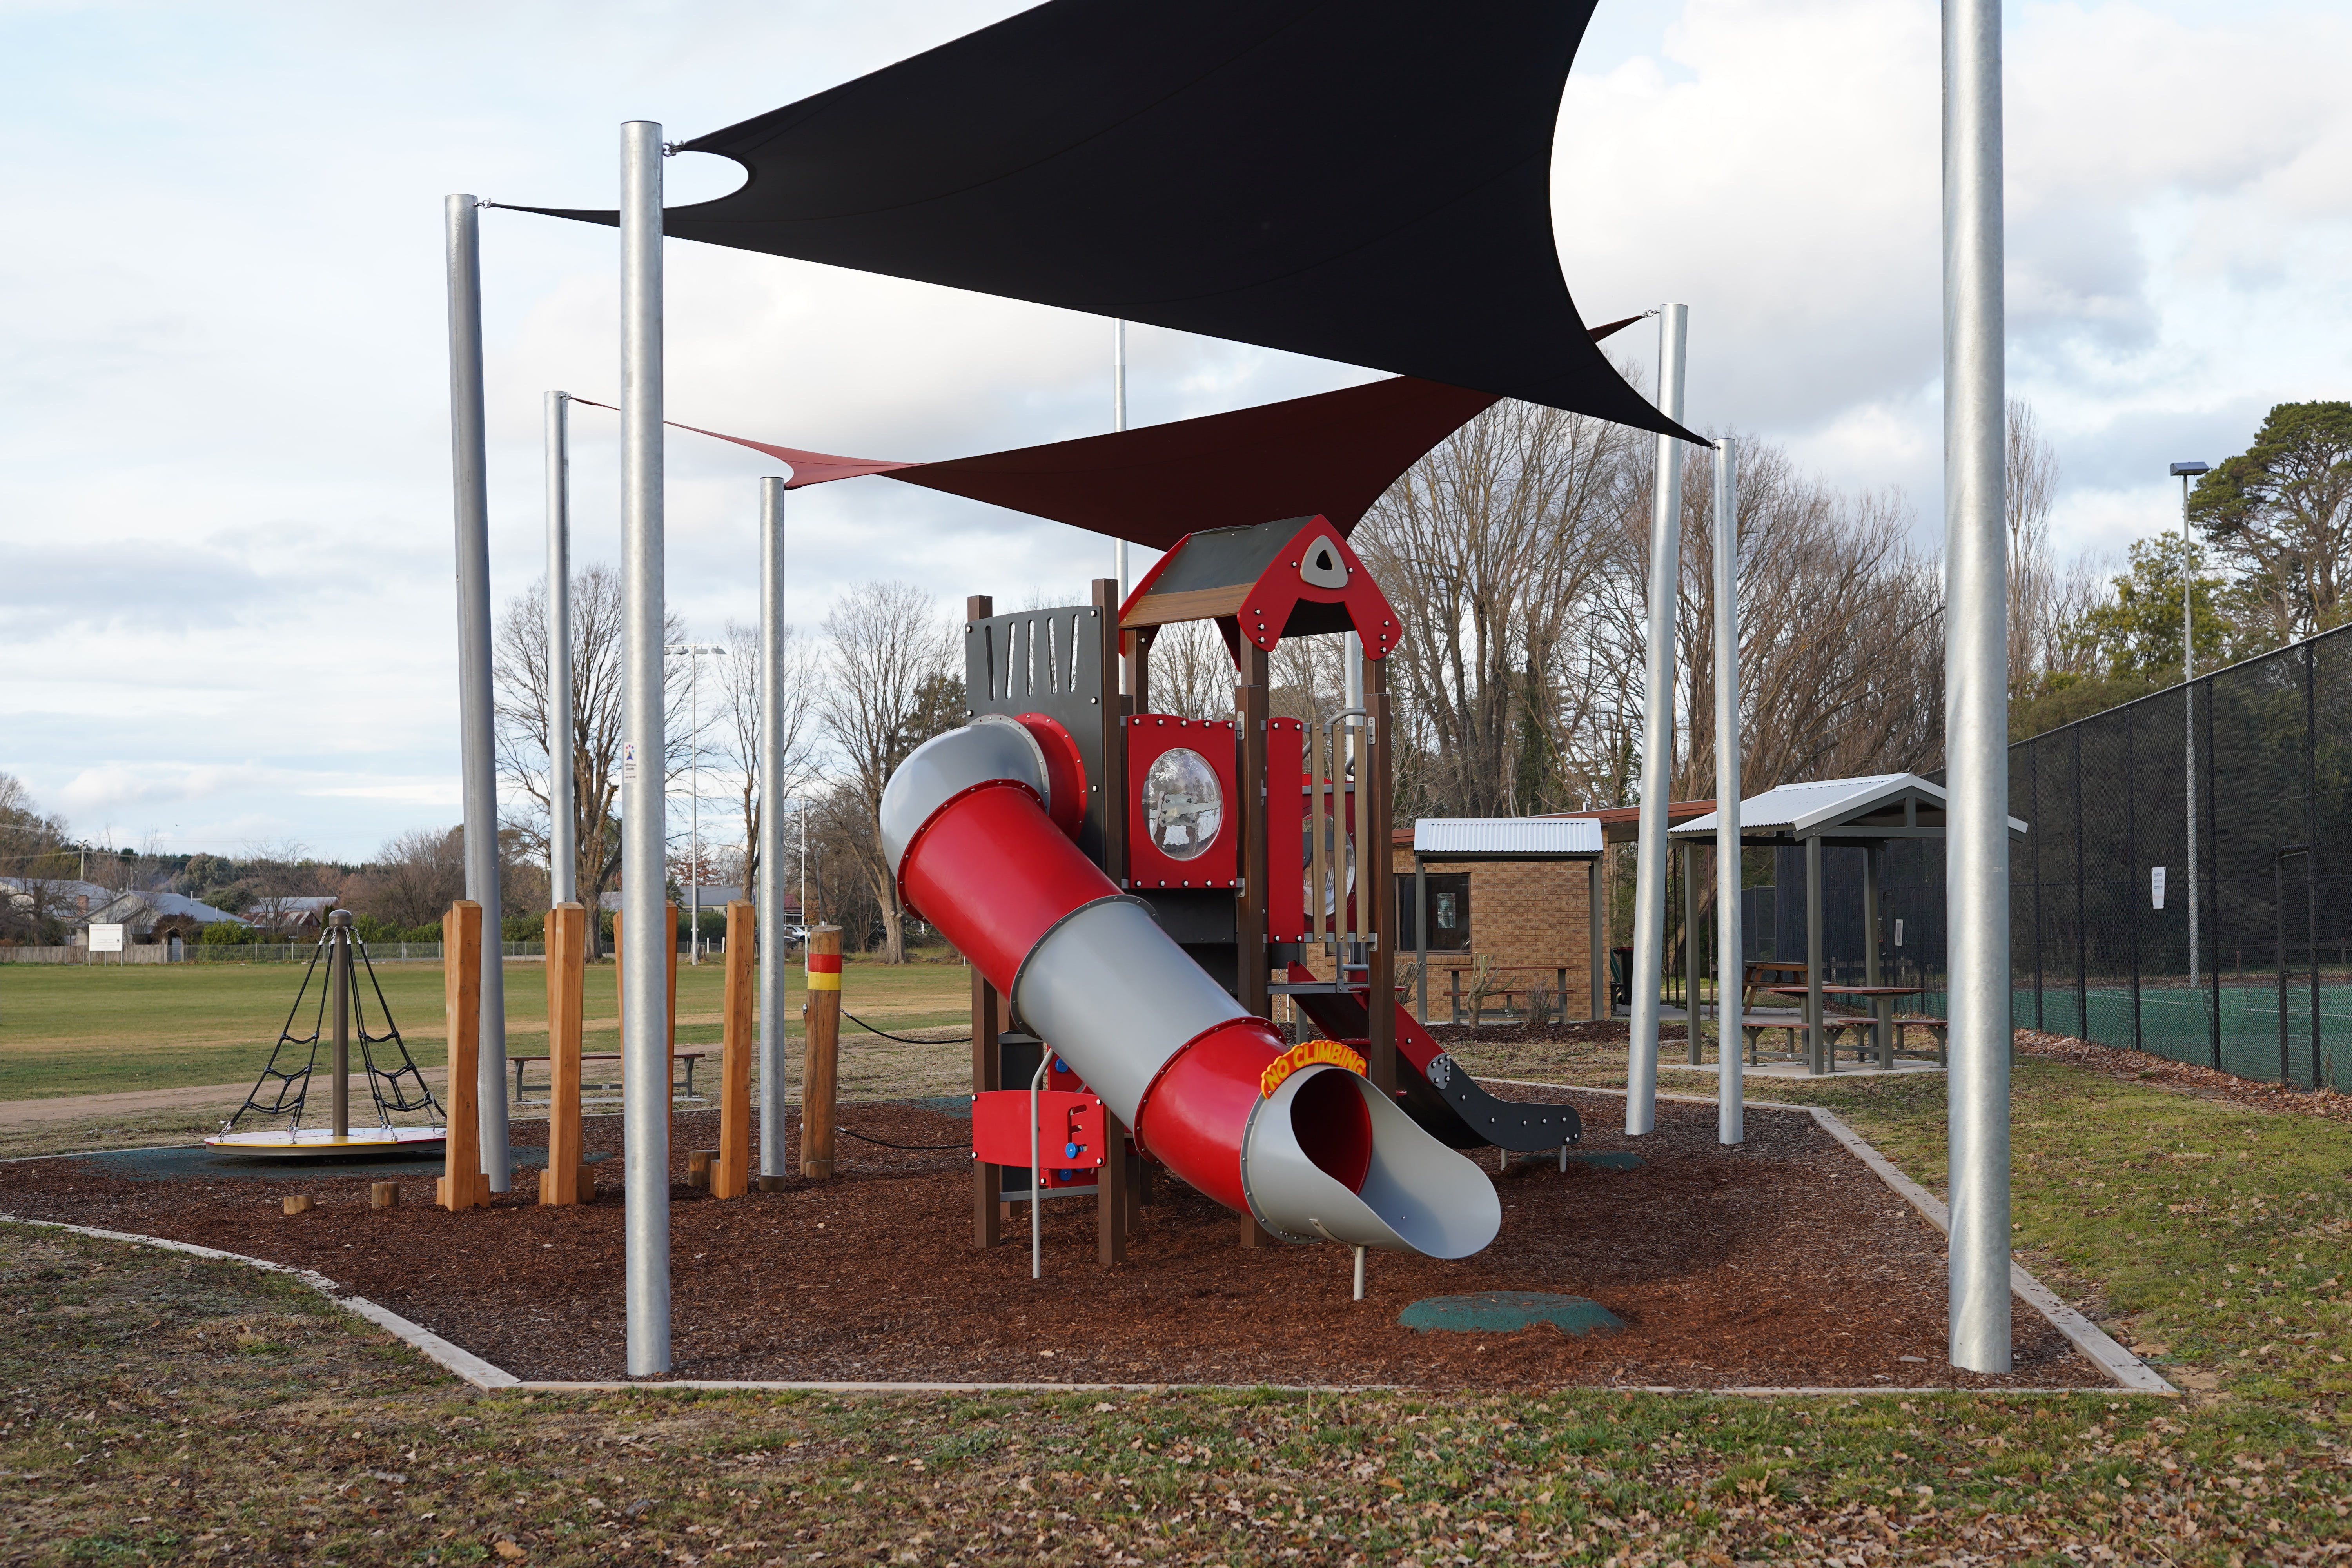 Braidwood Recreation Grounds and Playground - Accommodation Cairns